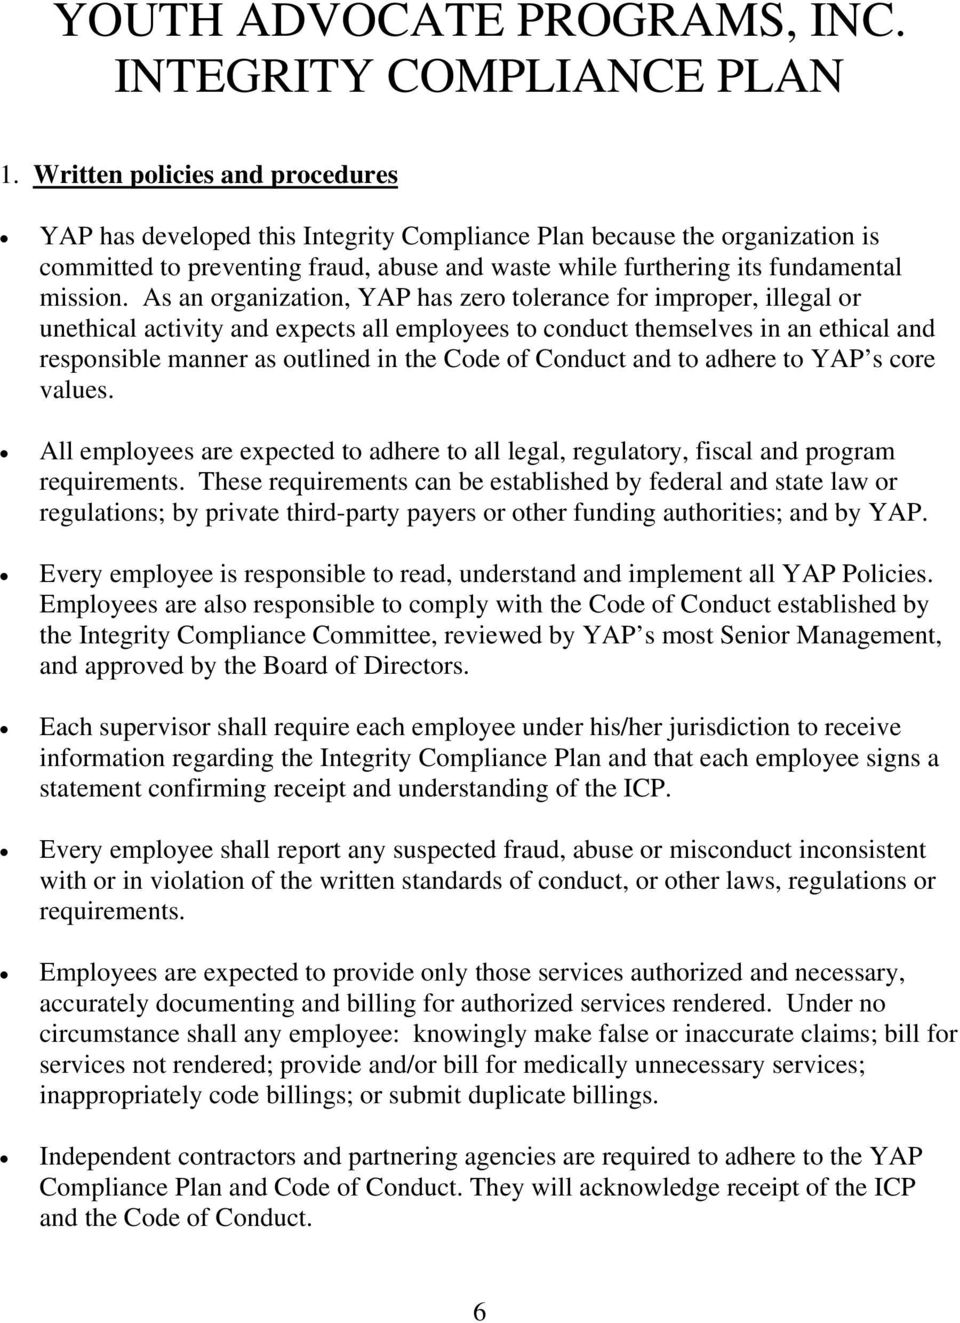 As an organization, YAP has zero tolerance for improper, illegal or unethical activity and expects all employees to conduct themselves in an ethical and responsible manner as outlined in the Code of